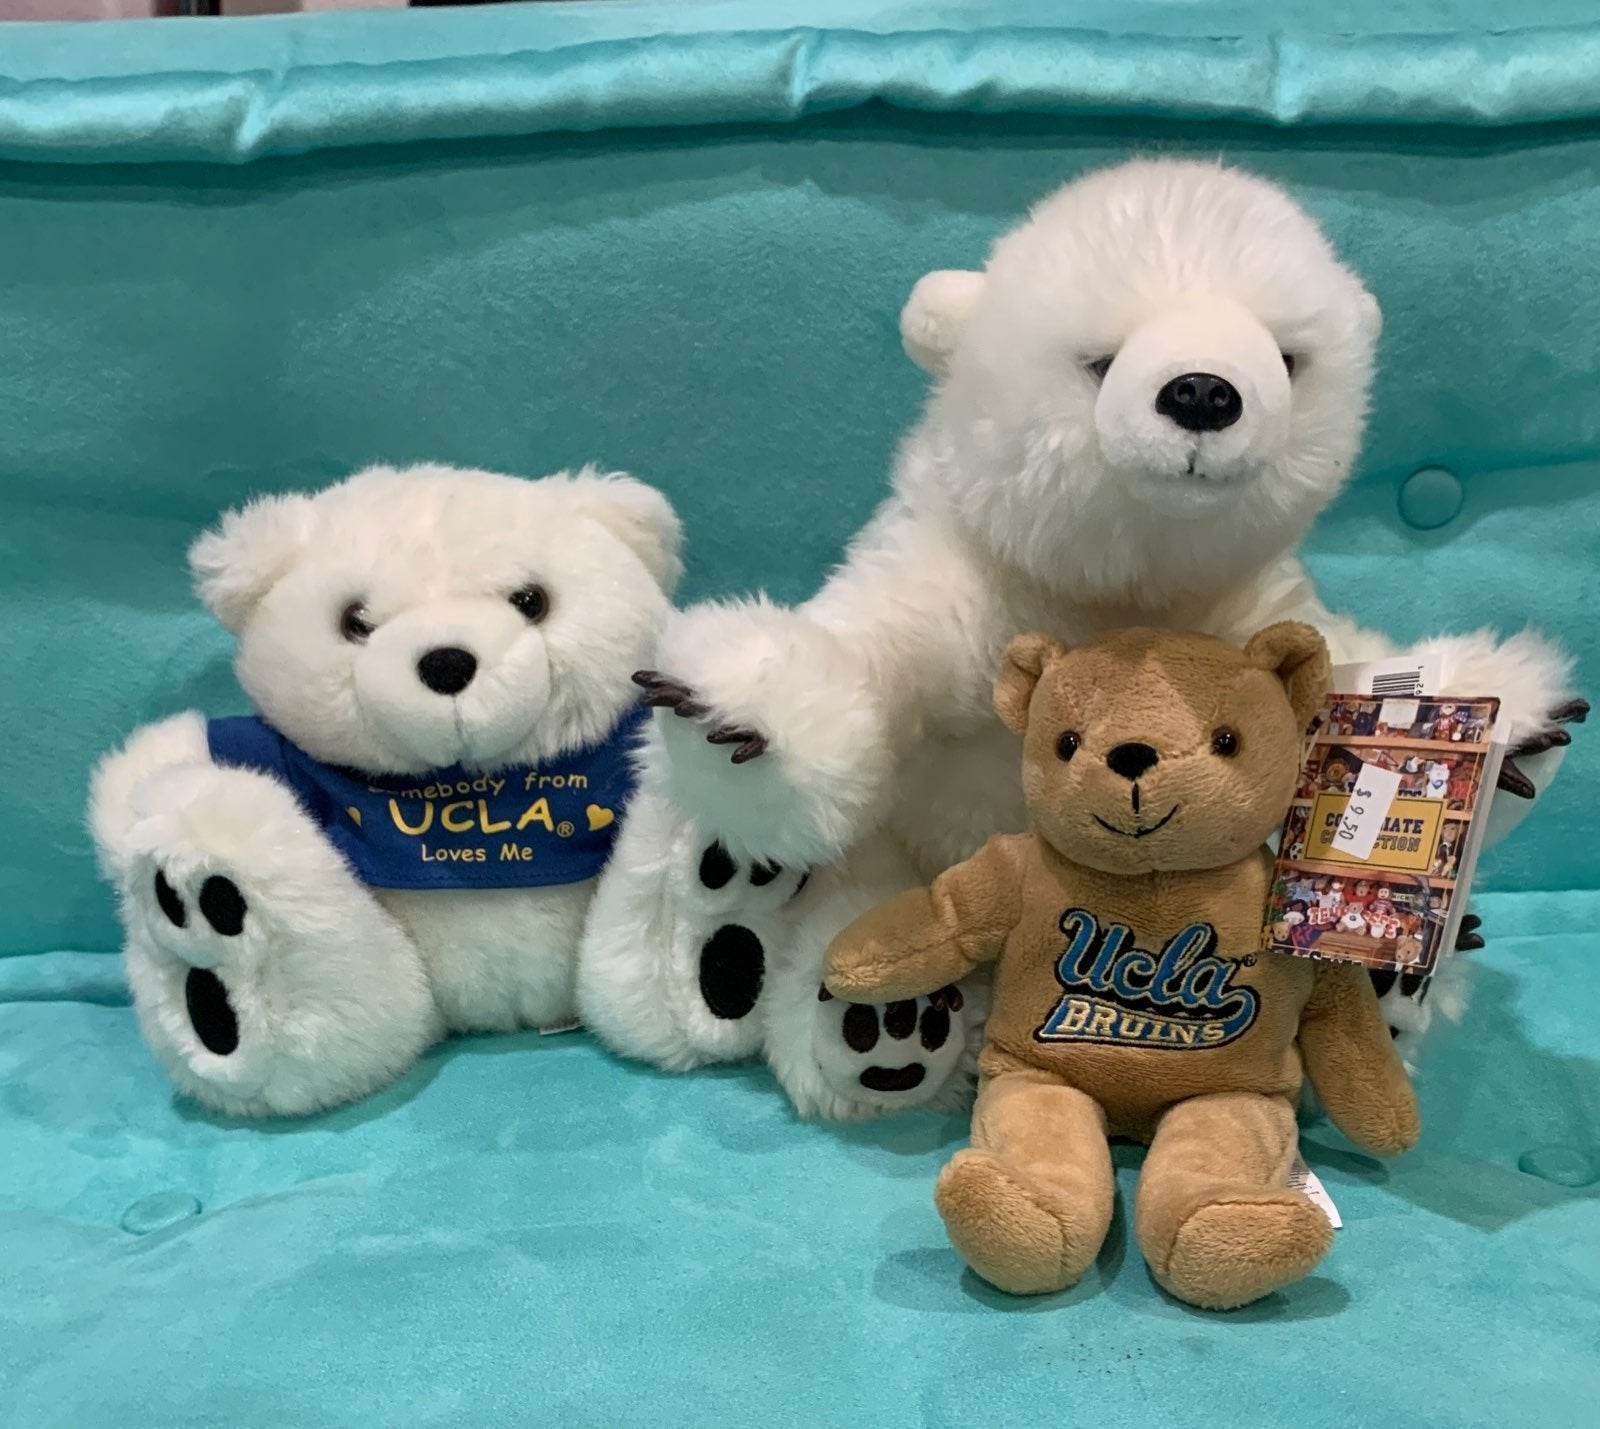 UCLA Bear Plush